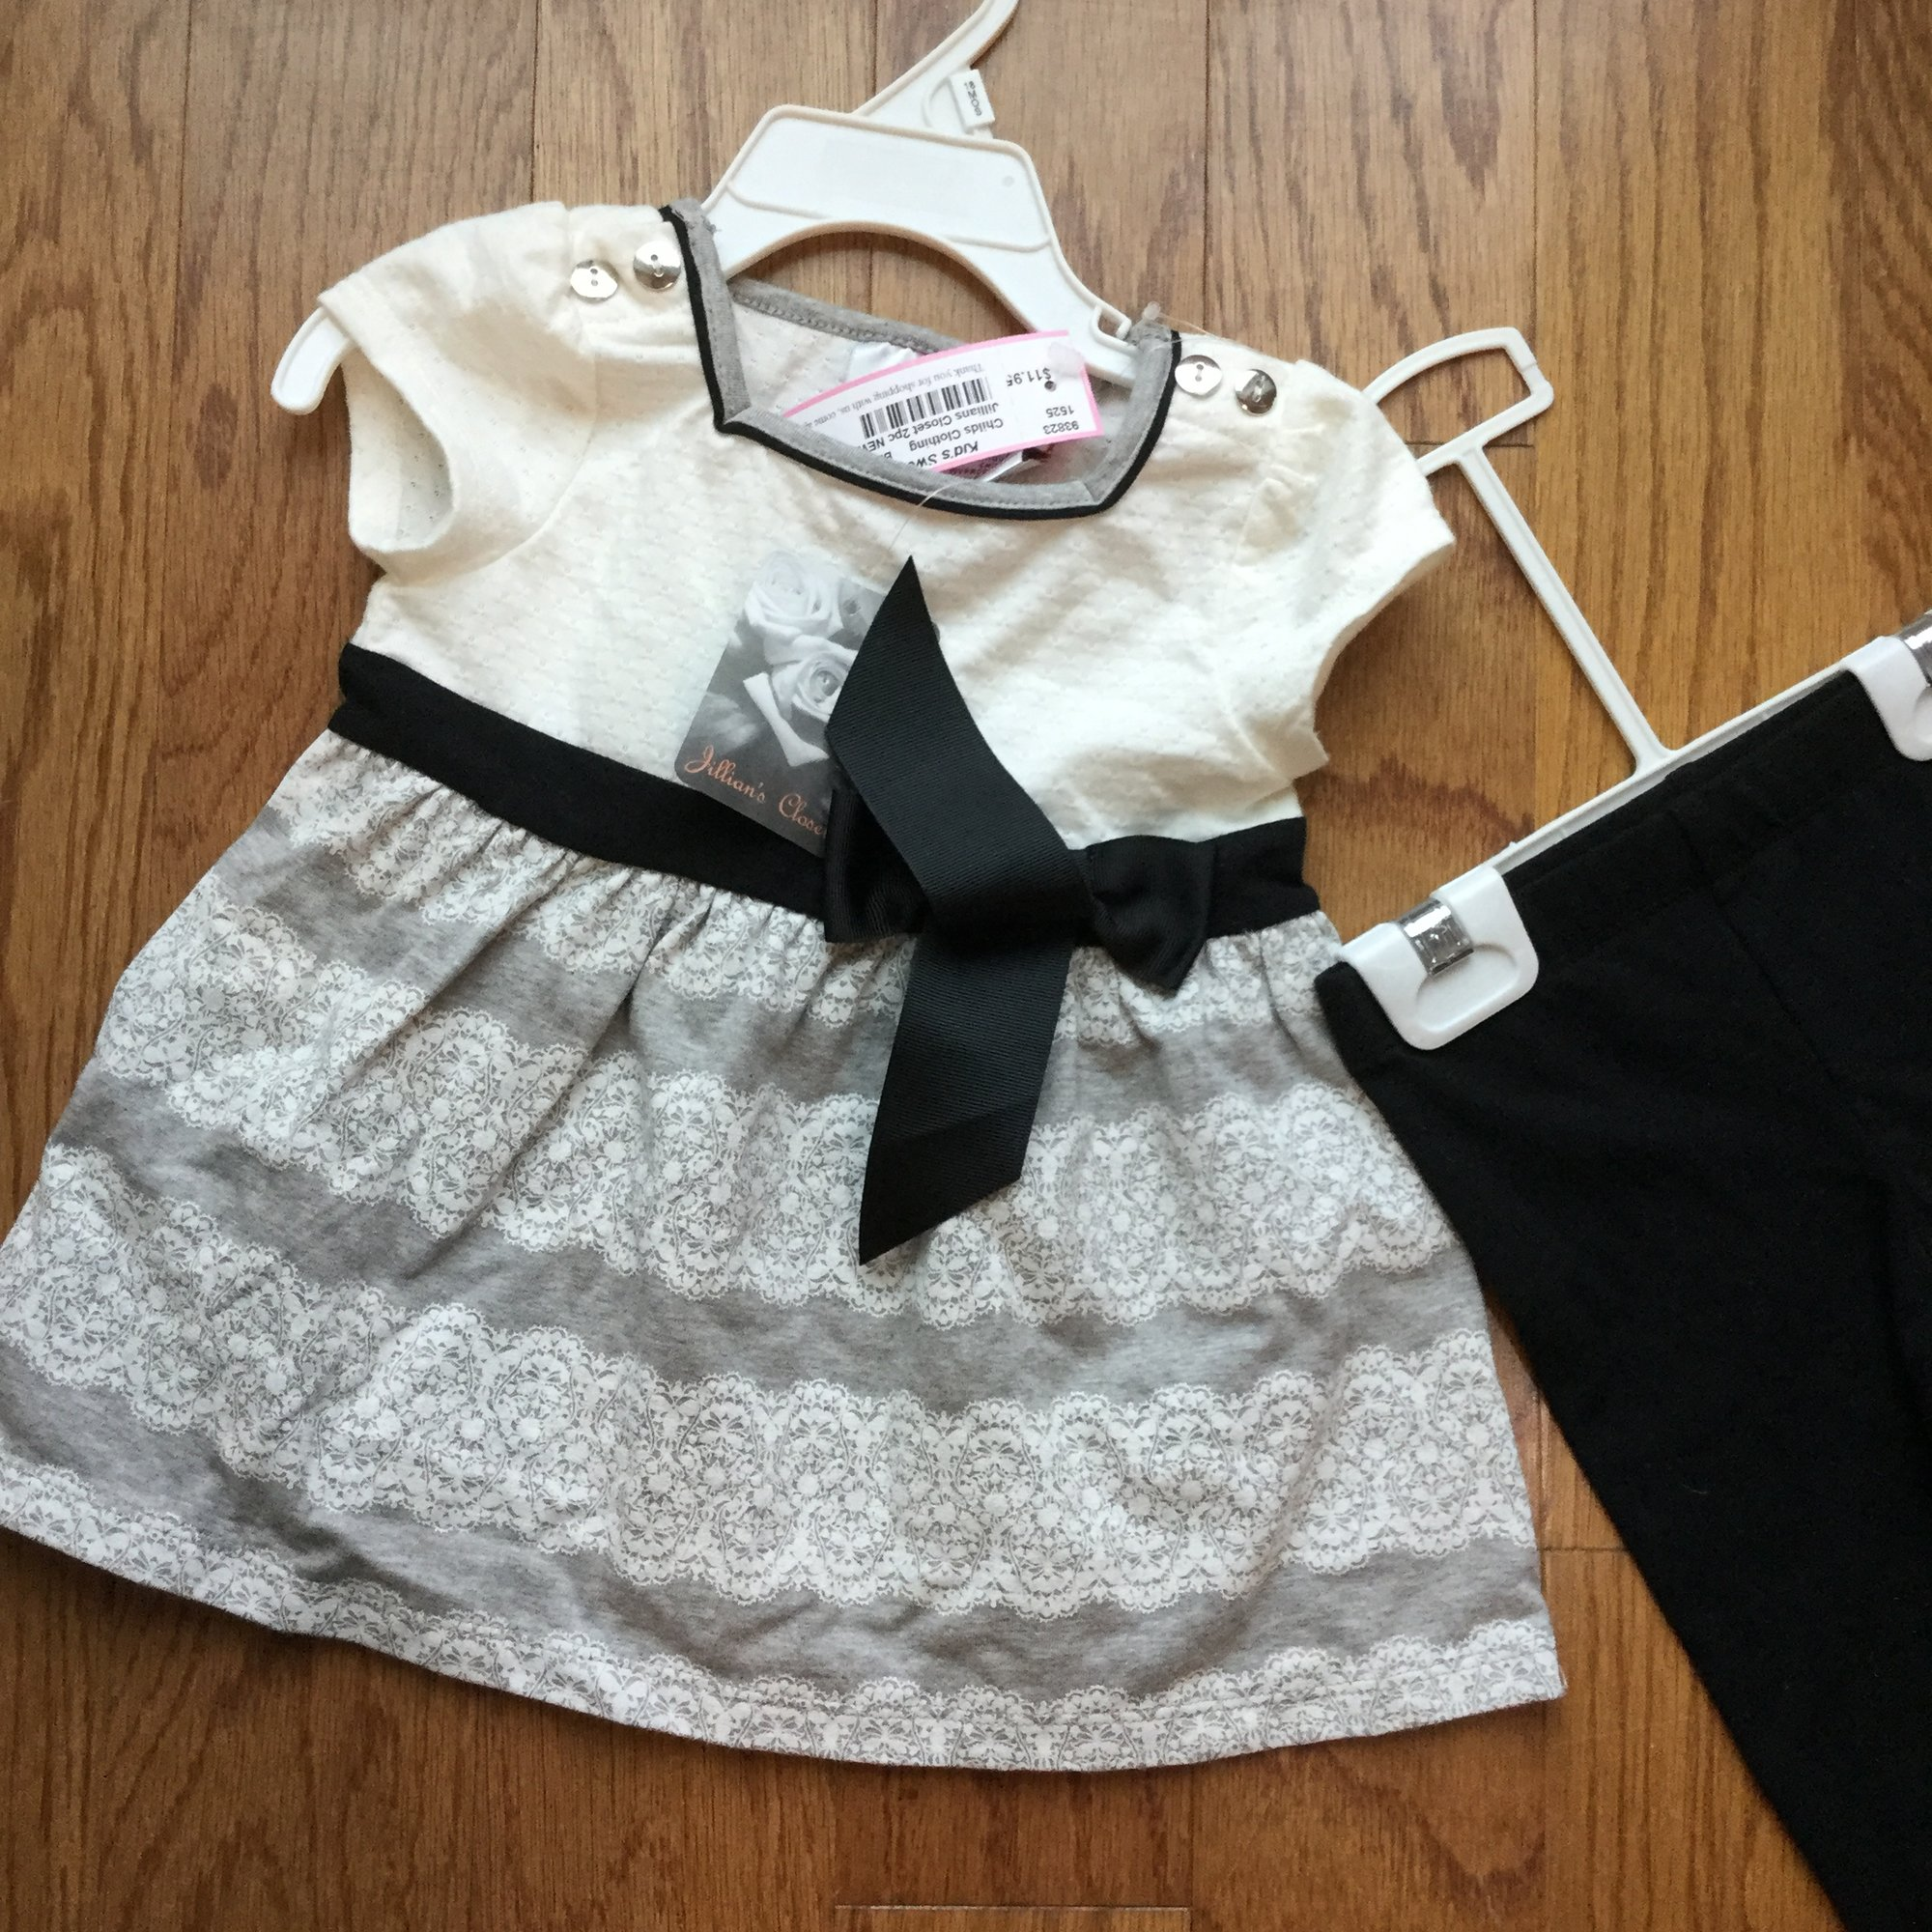 ... Jillians Closet 2pc NEW. Brand New With Tag